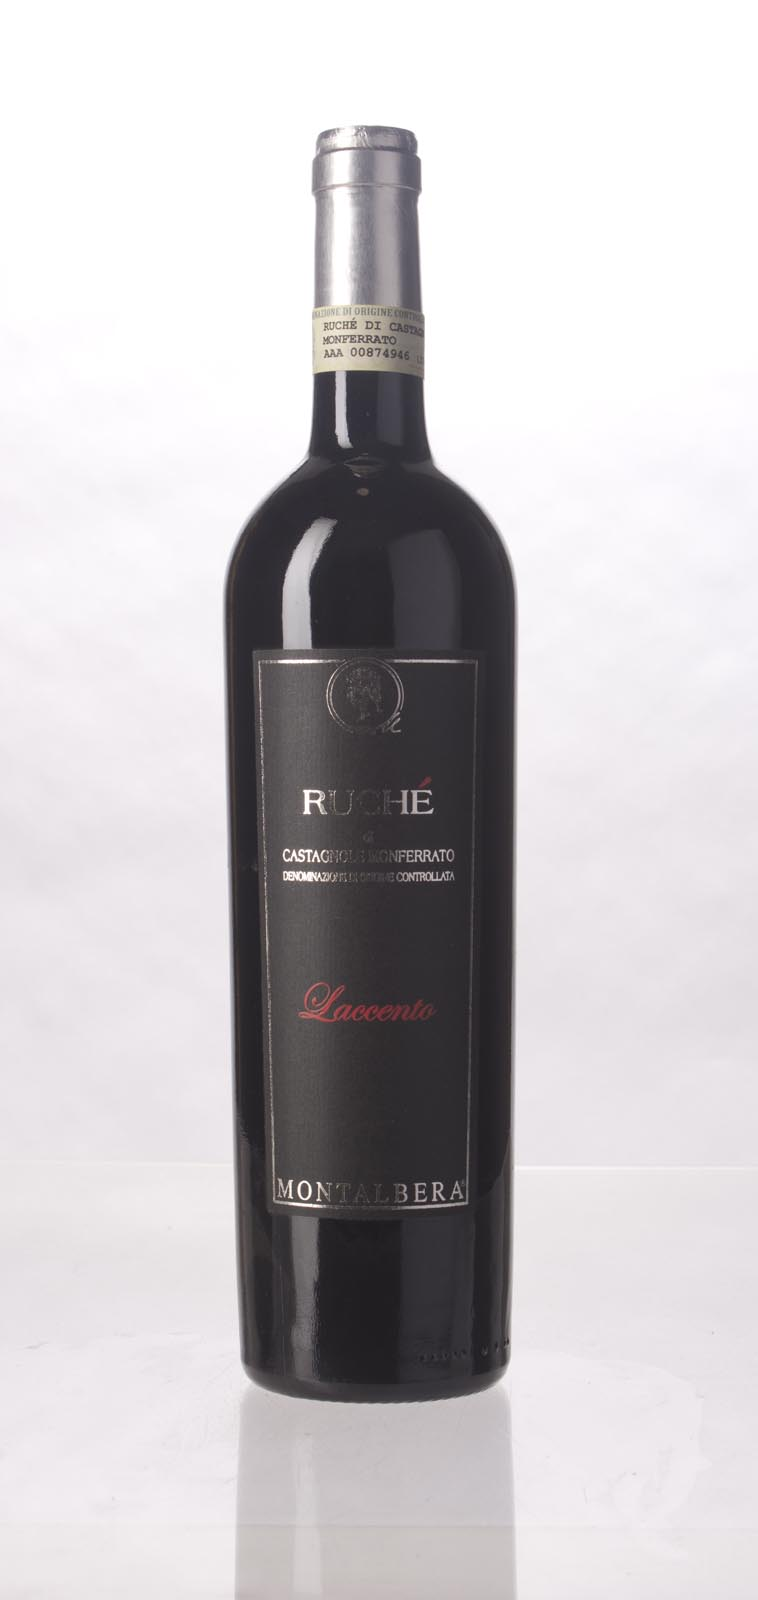 Montalbera Ruche di Castagnole Monferrato Laccento 2012,  (LM99) from The BPW - Merchants of rare and fine wines.